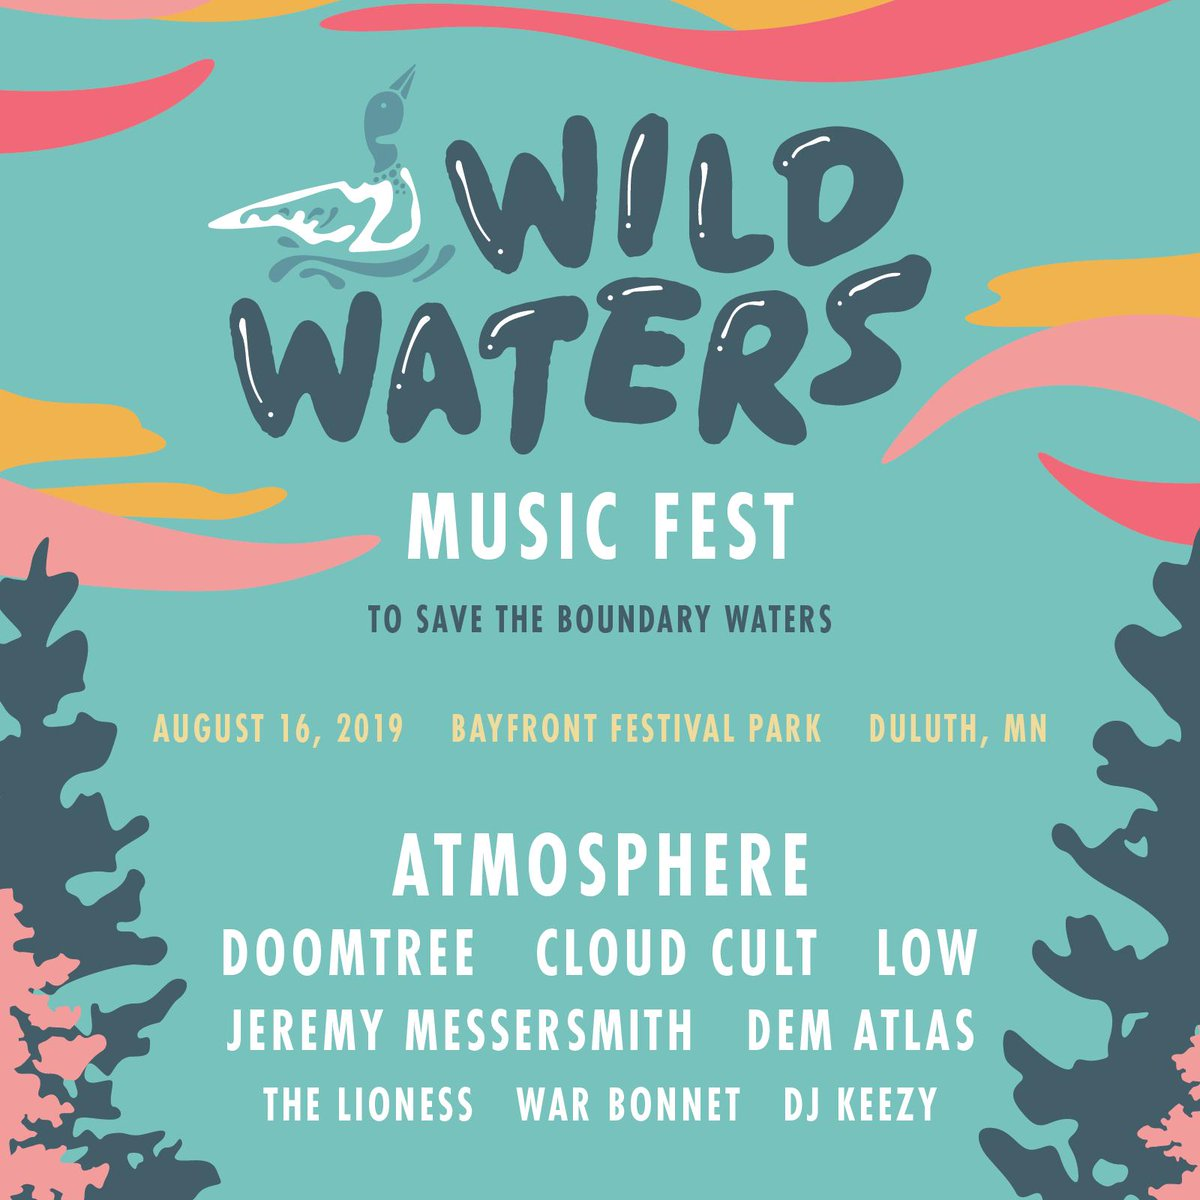 DULUTH, MN: Party this weekend to @savethebwca! Well see you at #WildWatersMusicFest on Friday with @atmosphere, @dematlas, @TheLionessMusic, @DJKeezy612, & more 🎉 Tickets + Info: bit.ly/WildWaters2019